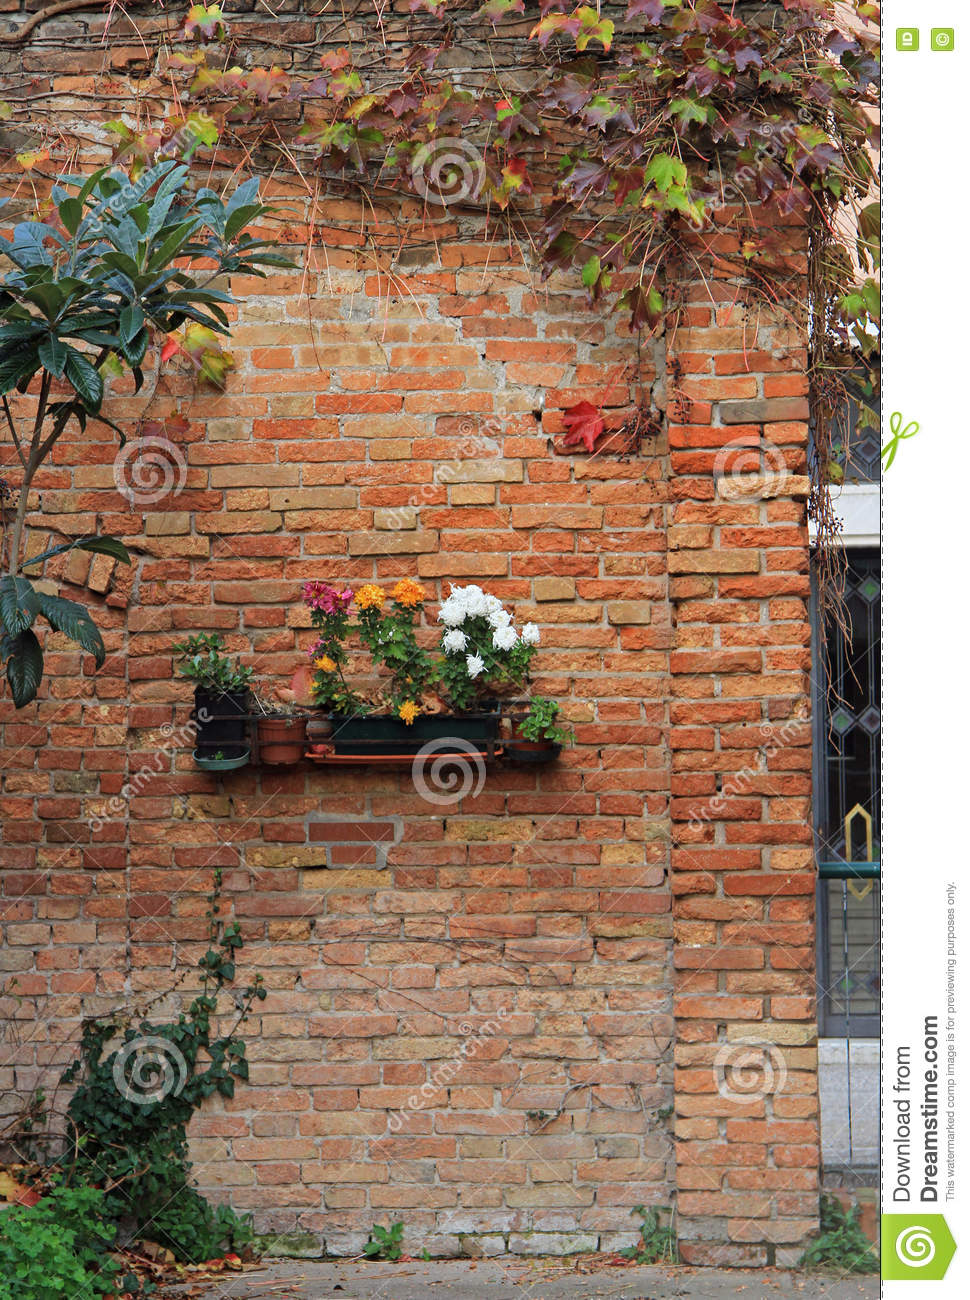 The Brick Wall With Flowerbed Stock Image Image Of Green